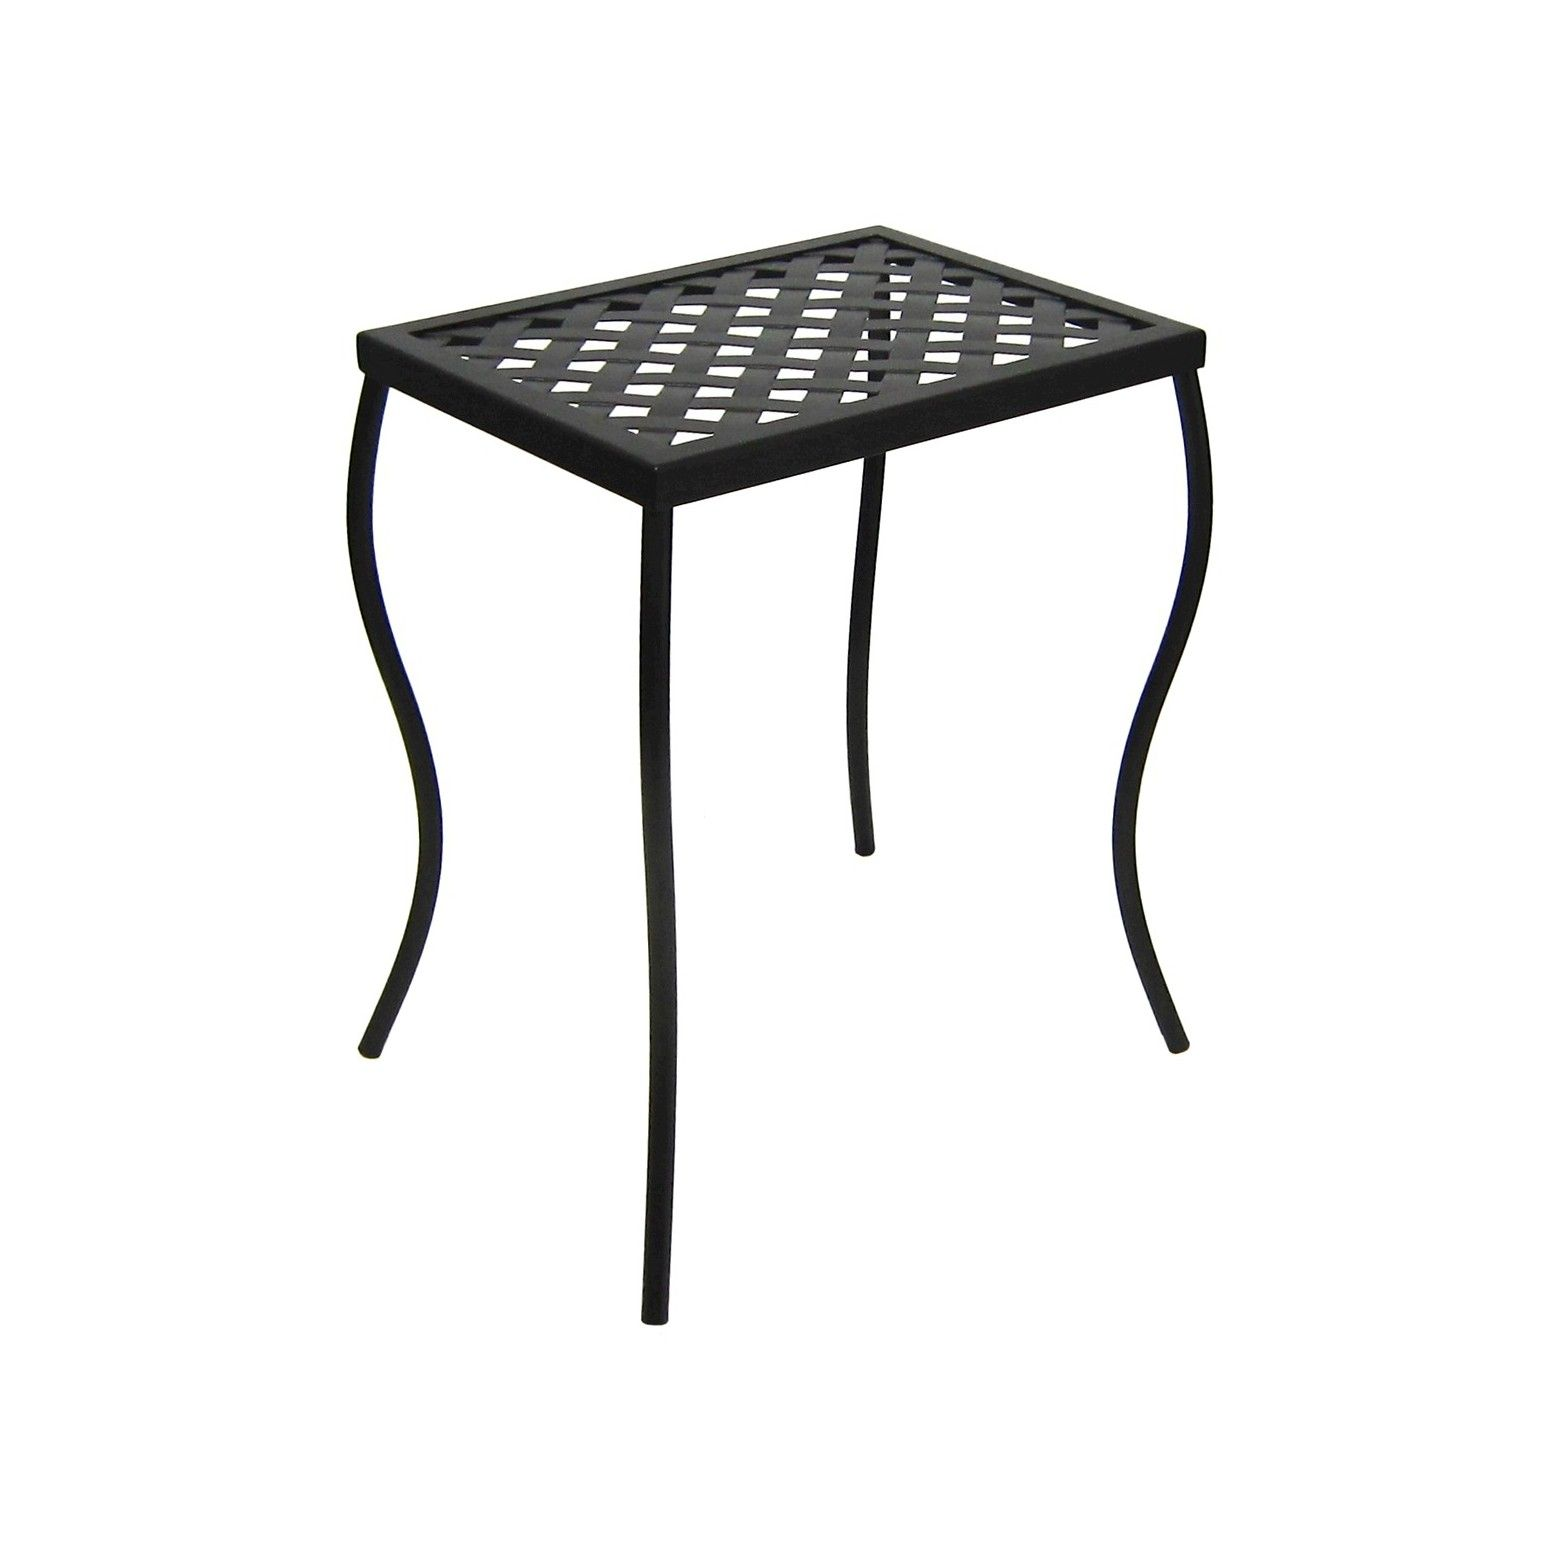 outdoor woven metal accent table threshold black seasons dress diy industrial coffee pieces for shelves small round tablecloth side plastic console with chairs plans antique